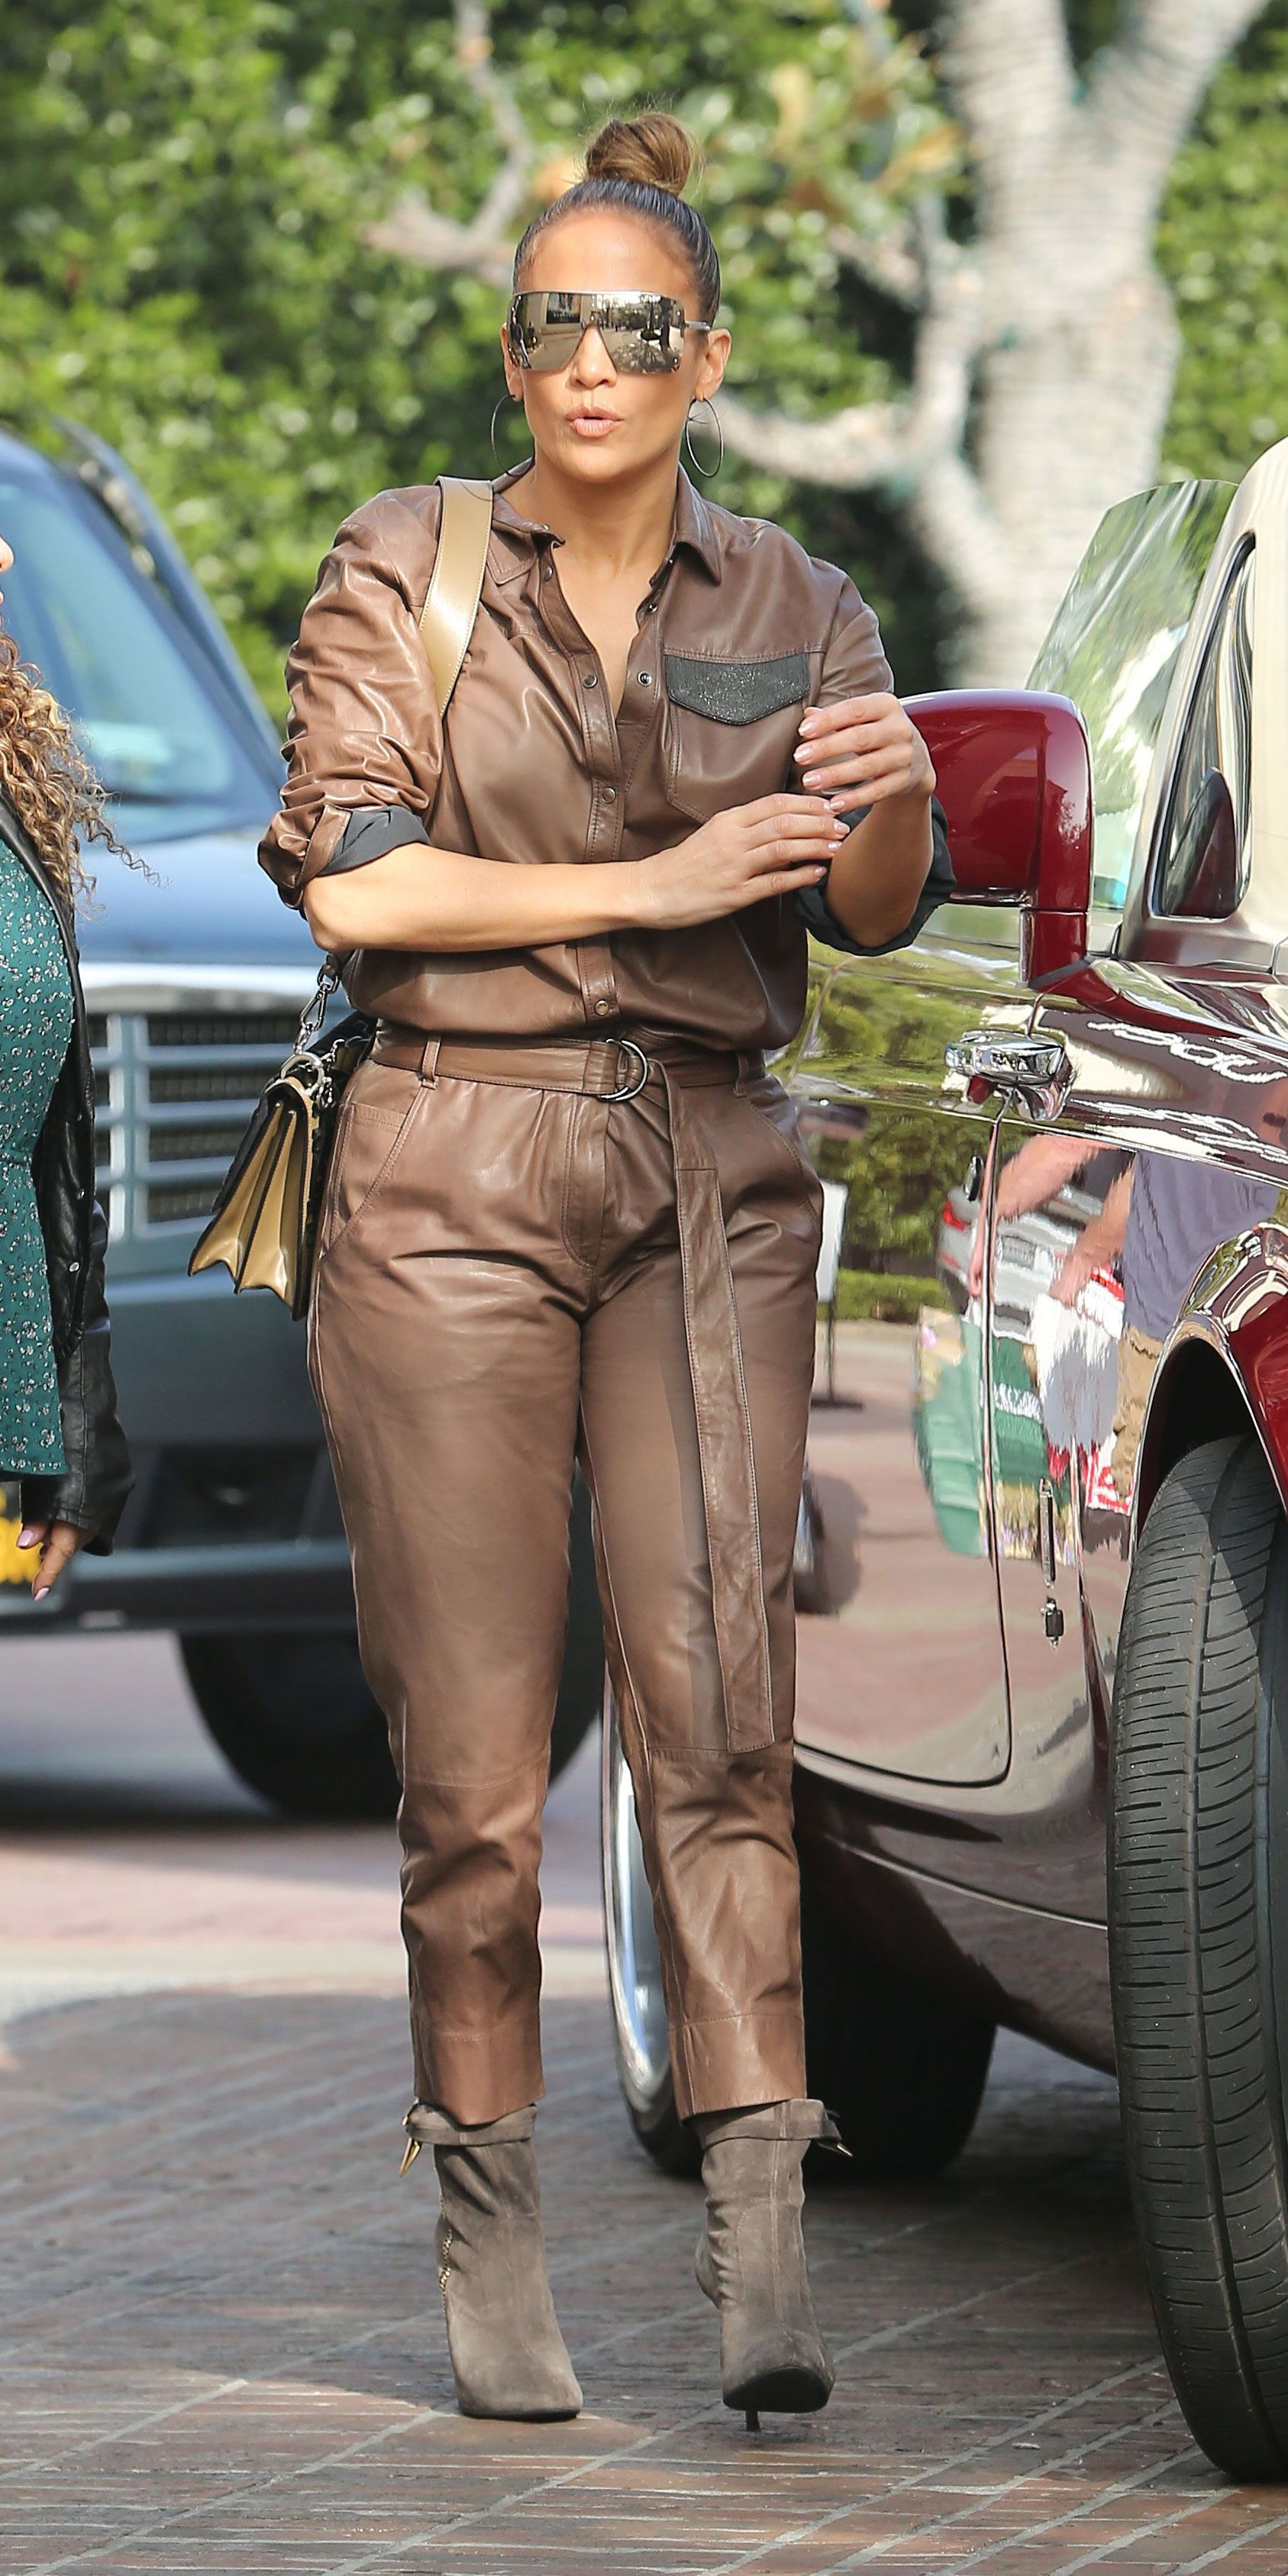 c1367b10a4f1 Jennifer Lopez put a glamorous twist on the boiler suit trend by wearing a  luxurious leather design by Brunello Cucinelli. Her Chanel shield  sunglasses